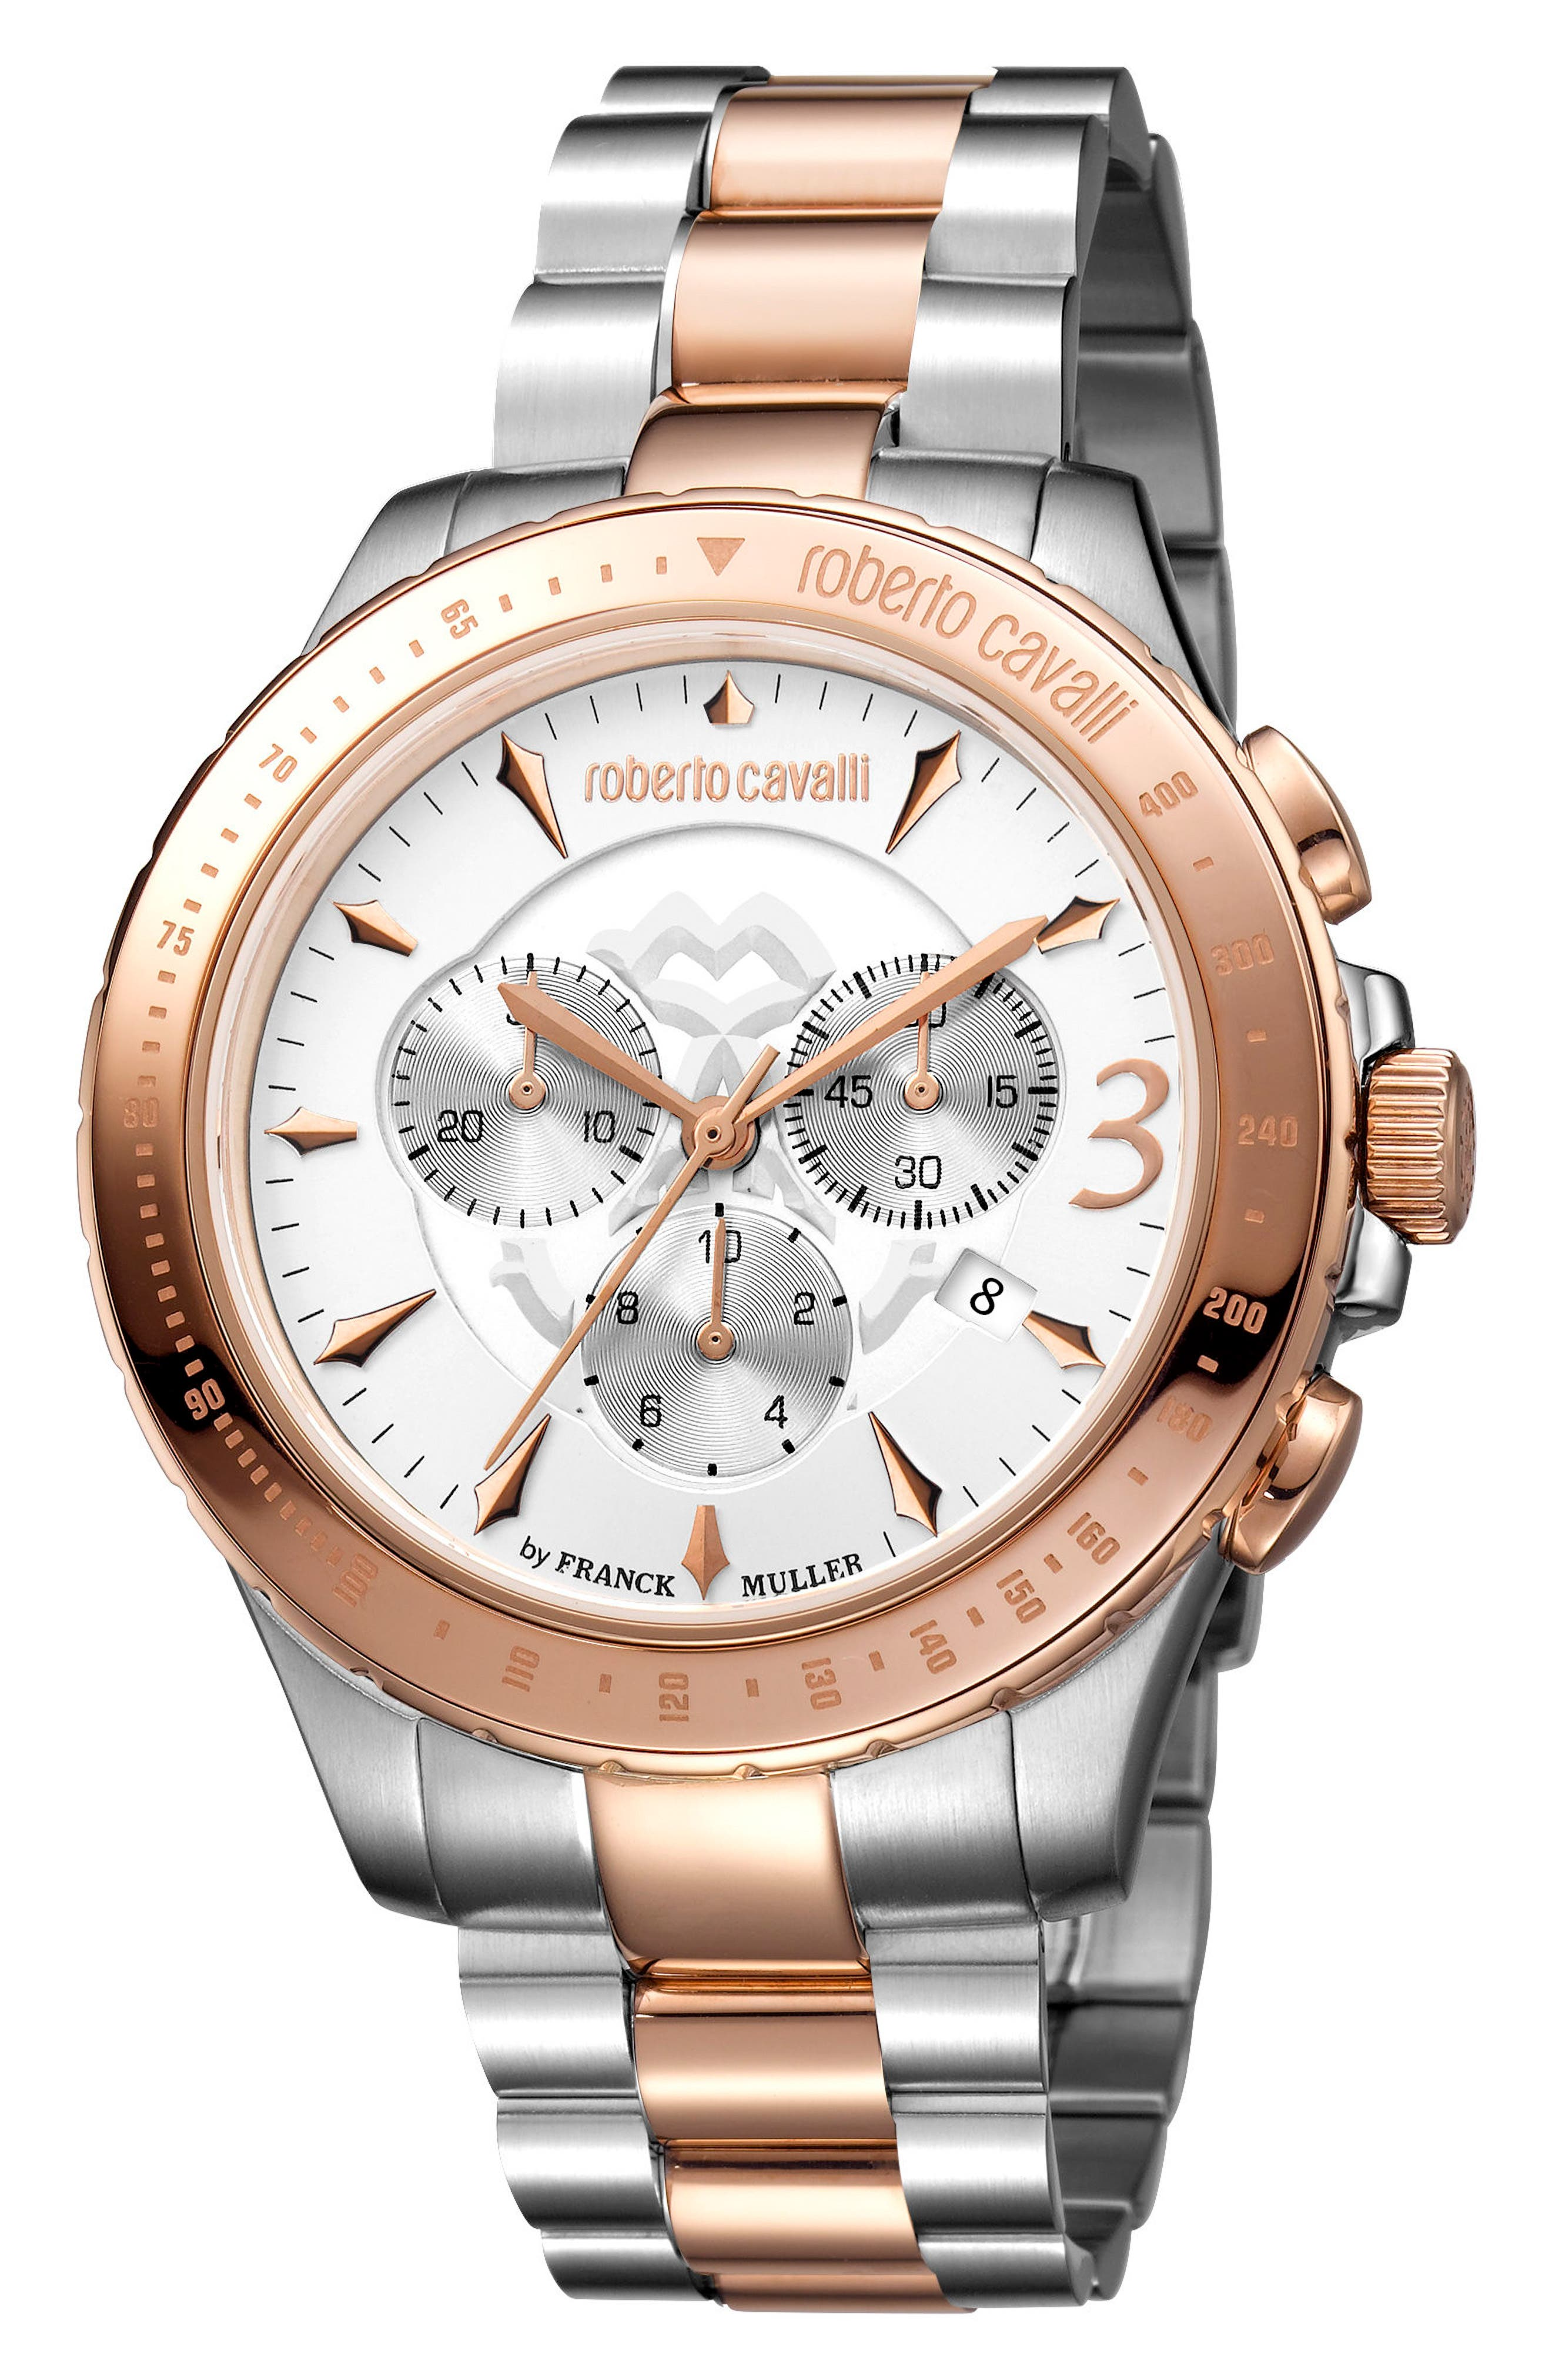 Alternate Image 1 Selected - Roberto Cavalli by Franck Muller Chronograph Bracelet Watch, 43mm